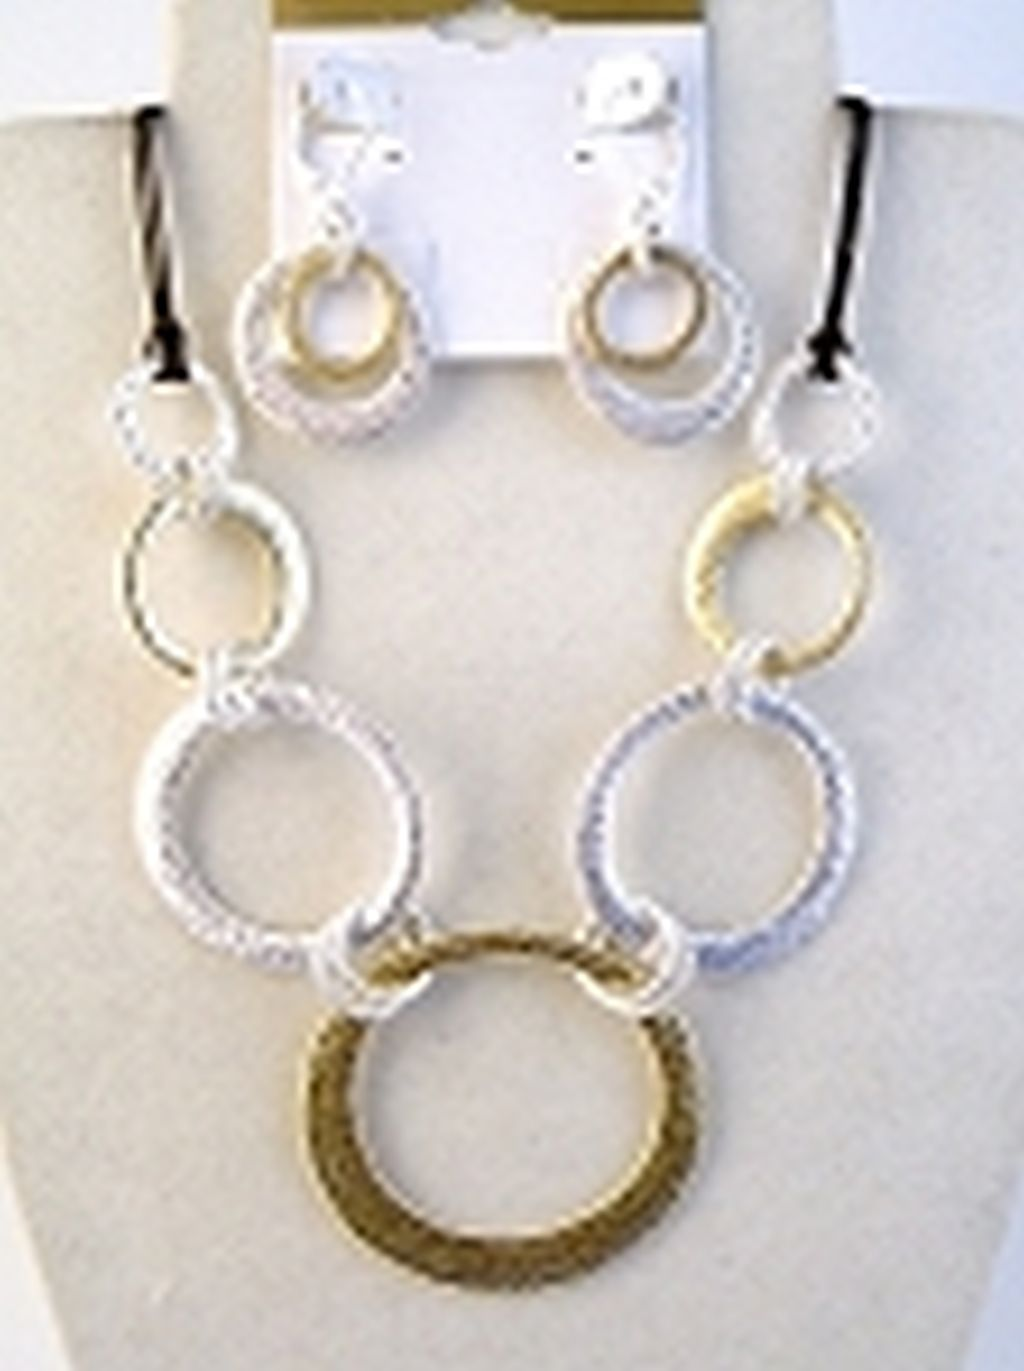 Two-tone Hammered Circles Necklace Bracelet Earrings Jewelry Set